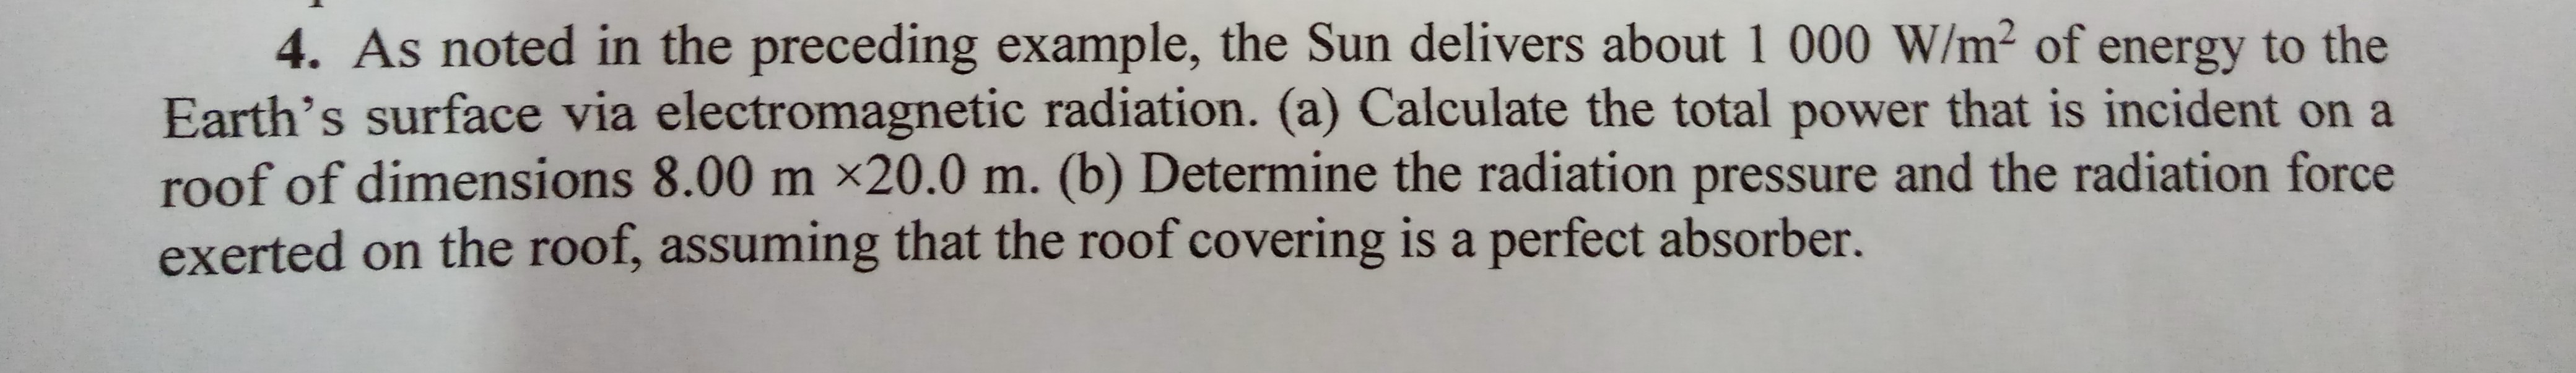 4. As noted in the preceding example, the Sun delivers about 1 000 W/m² of energy to the Earth's surface via electromagnetic radiation. (a) Calculate the total power that is incident on a roof of dimensions 8.00 m ×20.0 m. (b) Determine the radiation pressure and the radiation force exerted on the roof, assuming that the roof covering is a perfect absorber.